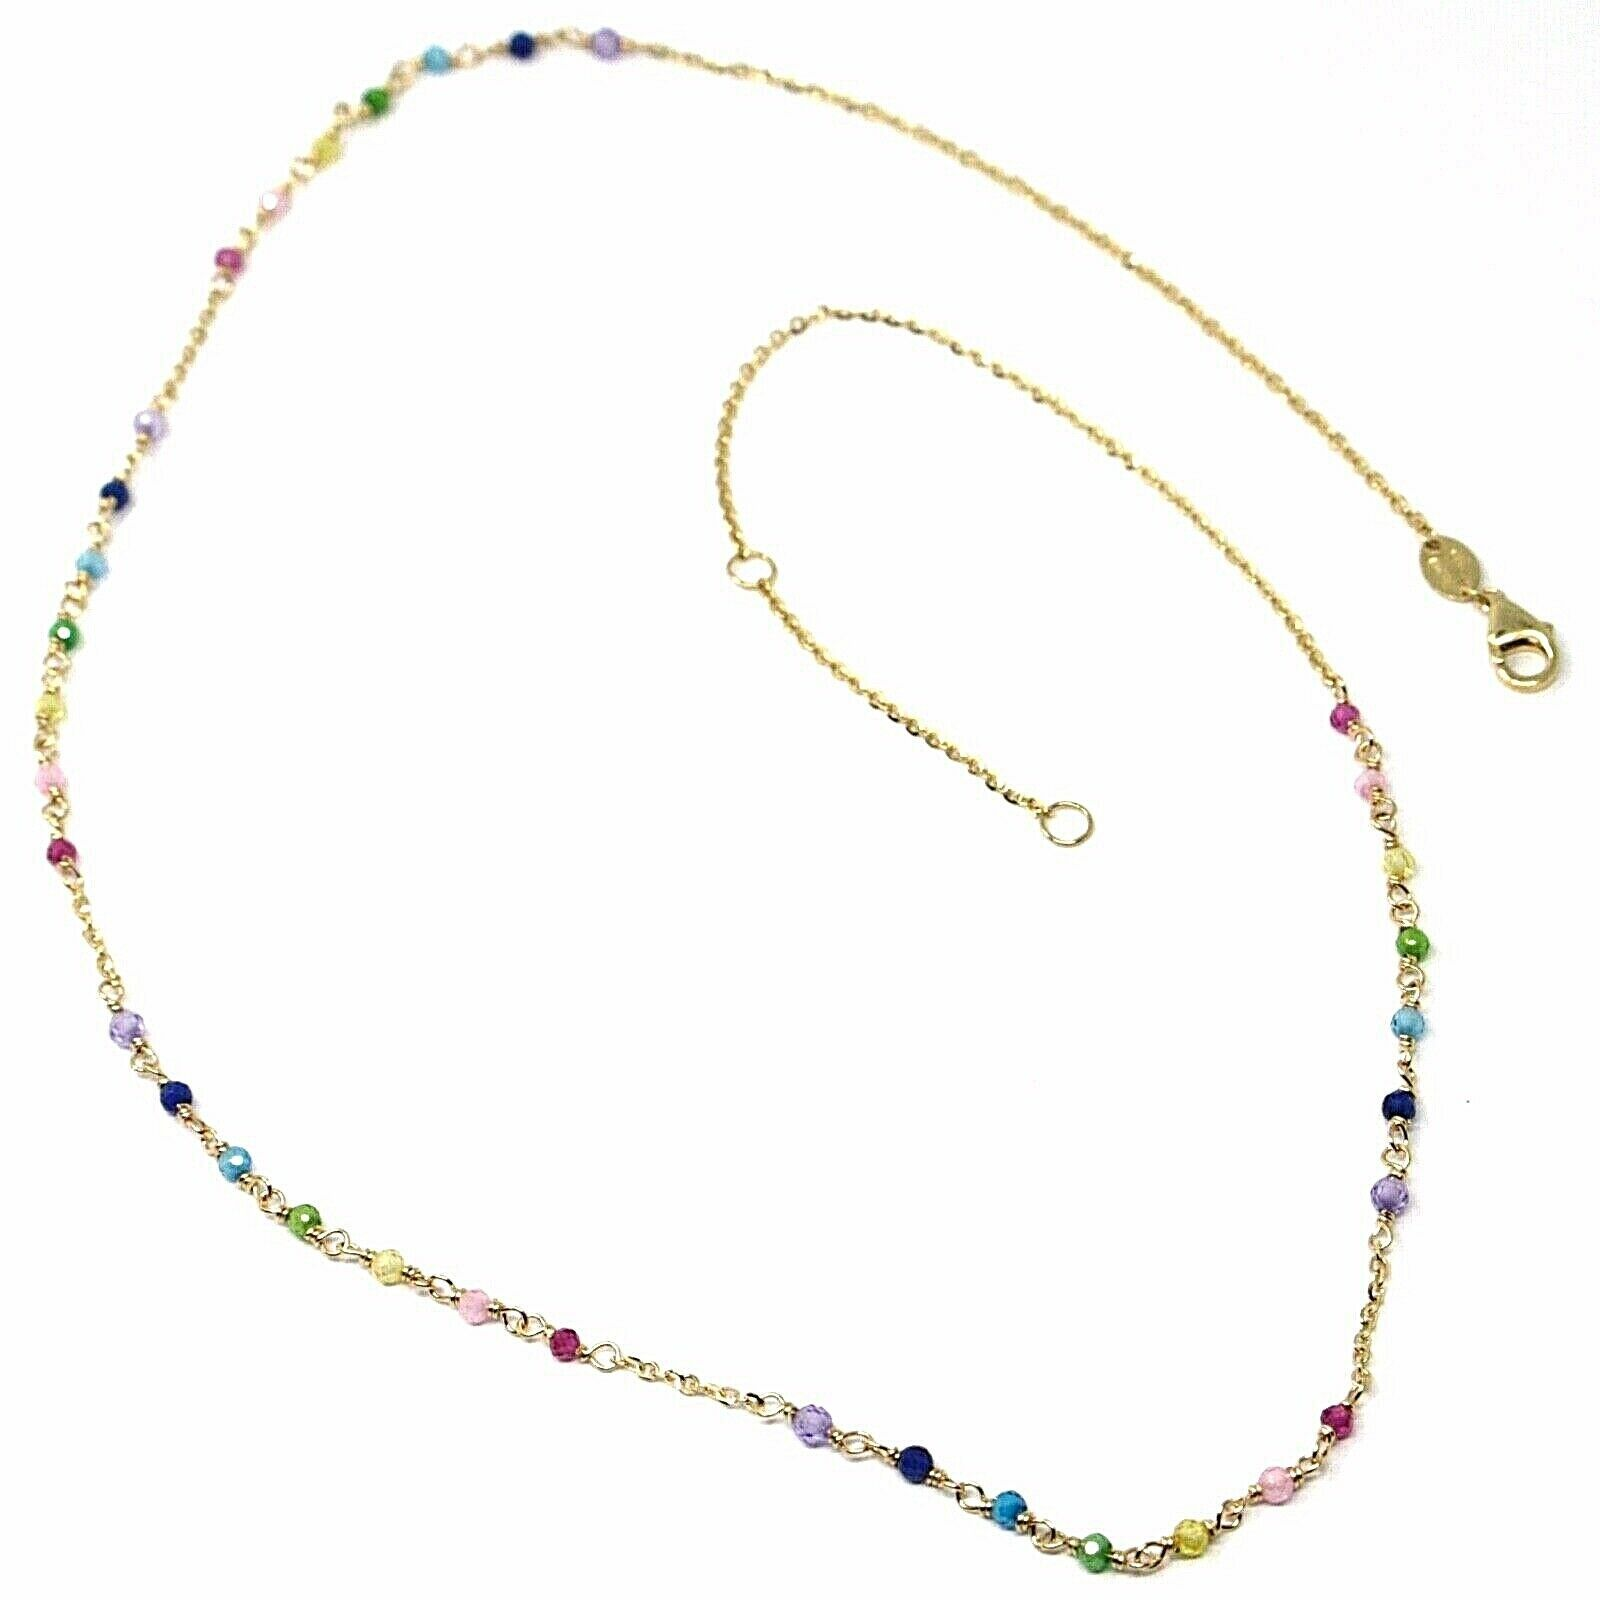 18K YELLOW GOLD NECKLACE, MULTI COLOR FACETED CUBIC ZIRCONIA, ROLO CHAIN, 18""